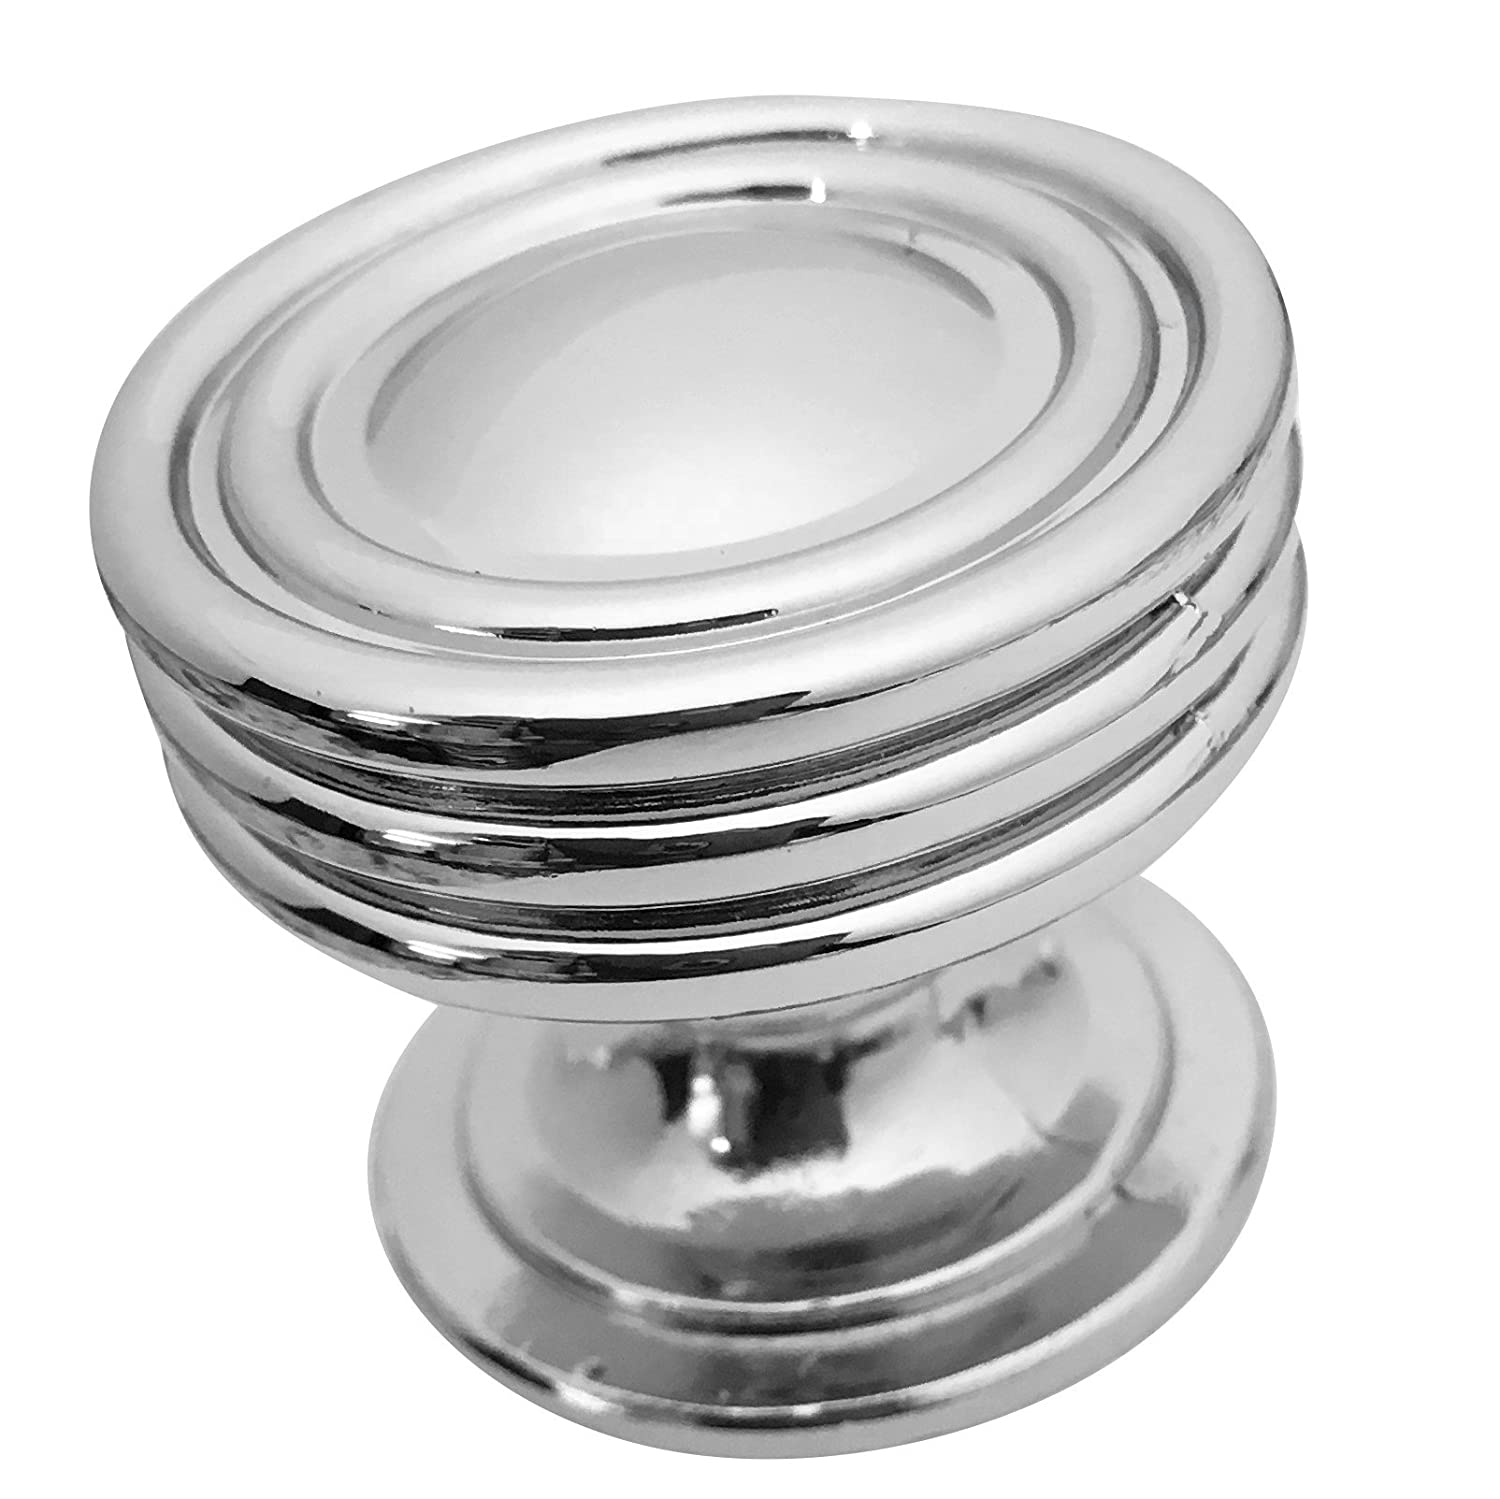 Polished Chrome Cabinet Knob by Southern Hills, Round Cabinet Knobs, 1 1/4 Inch Diameter, Pack of 5 Knobs, Chrome Cabinet Knobs, Cupboard Knobs, Kitchen Cabinet Knobs Chrome, SHKM008-CHR-5